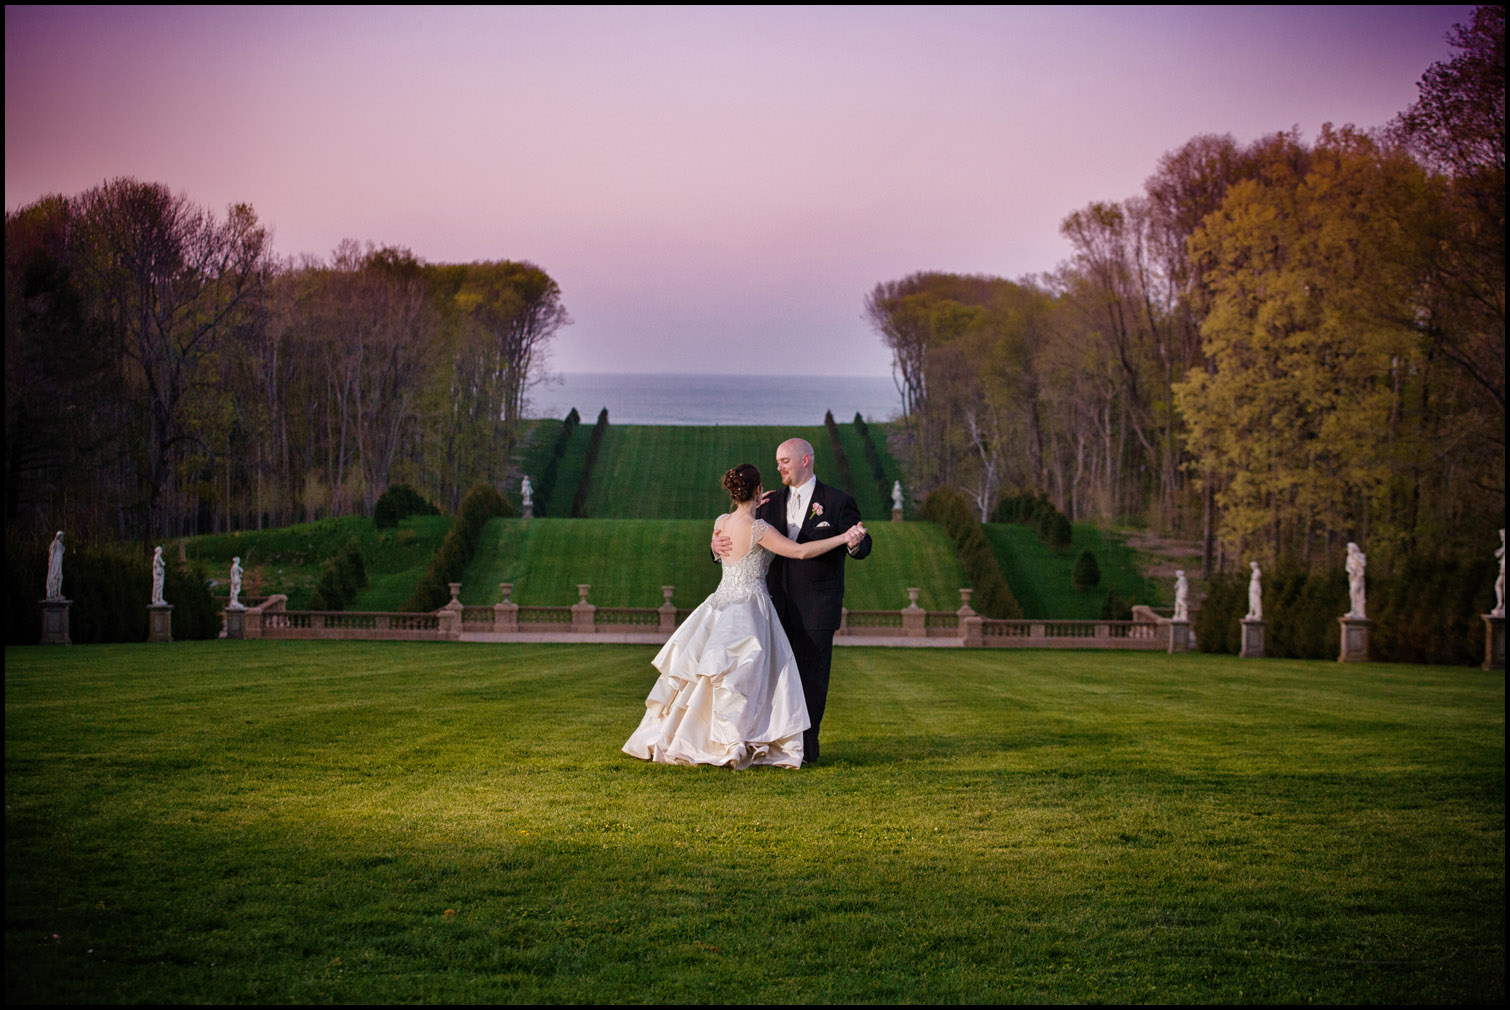 bride and groom dancing at grand allee at crane estate in Ipswich, Massachusetts